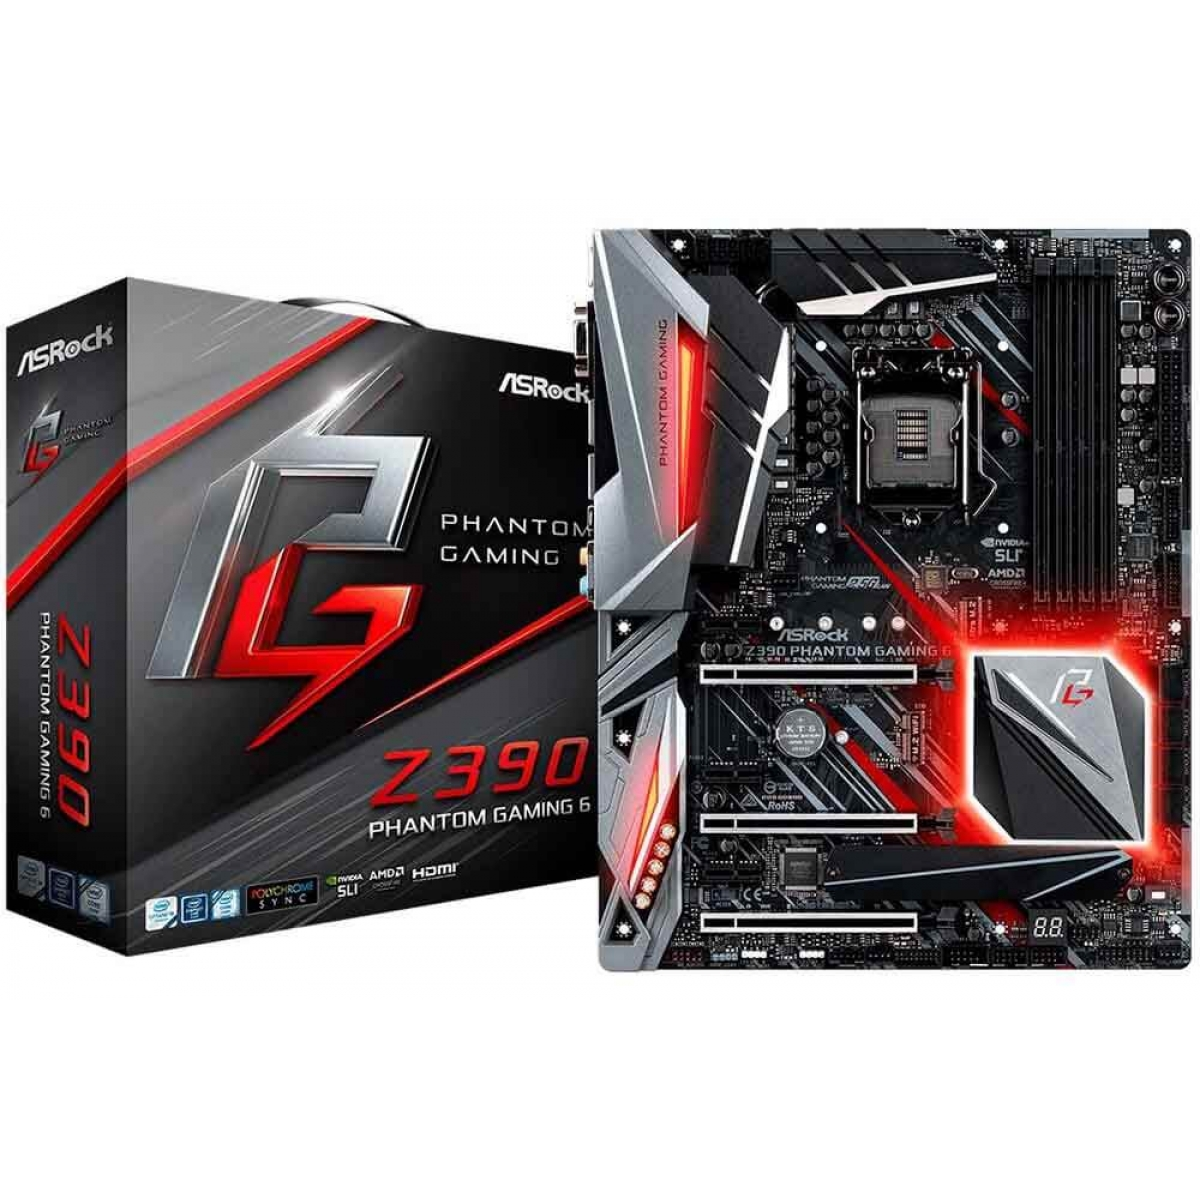 Placa Mãe ASRock Z390 Phantom Gaming 6, Chipset Z390, Intel LGA 1151, ATX, DDR4